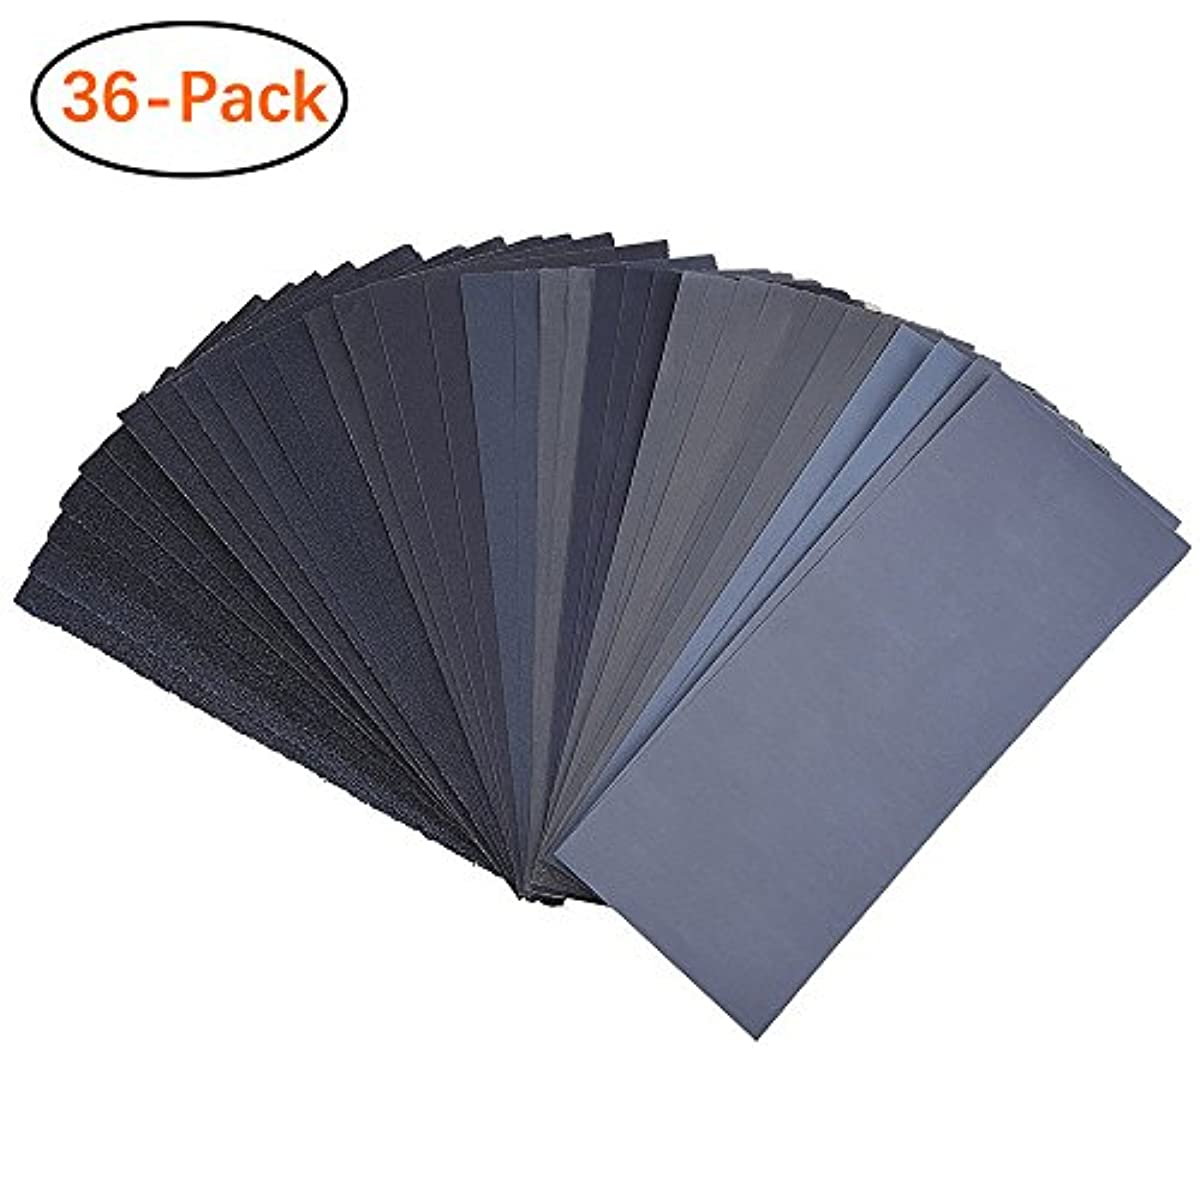 Sandpaper For Metal >> Details About 120 To 3000 Assorted Grit Sandpaper For Wood Furniture Finishing Metal Easy Iden